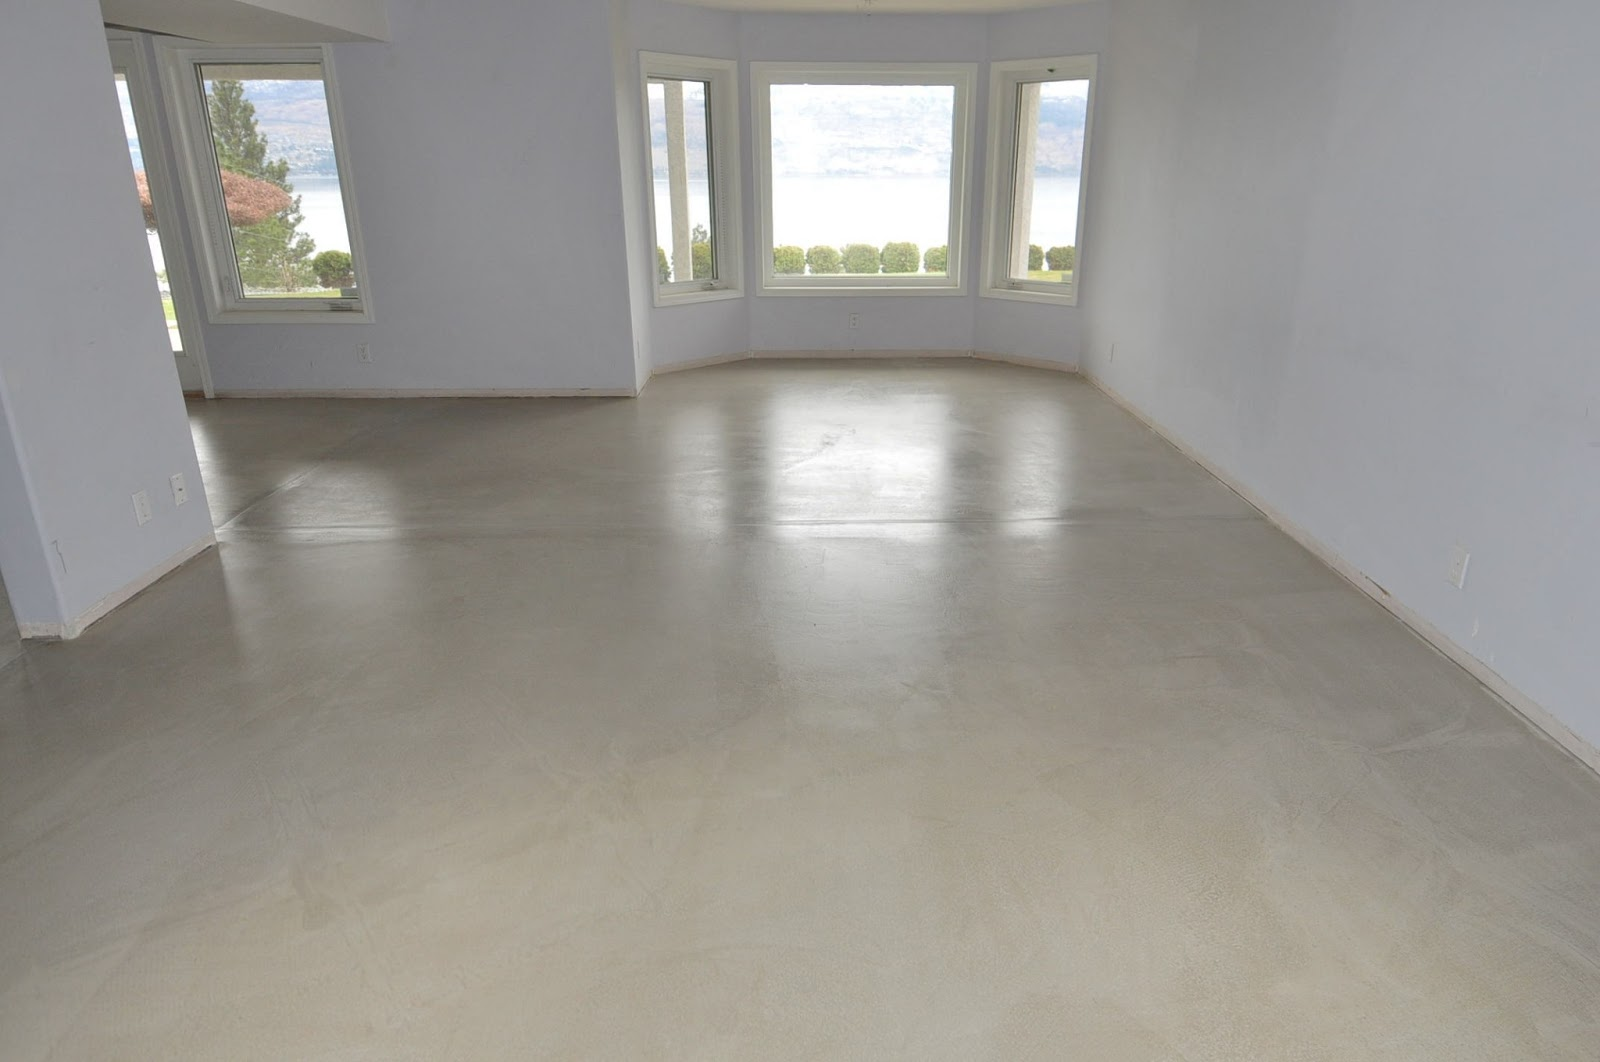 MODE CONCRETE: Cool and Modern Concrete Floors